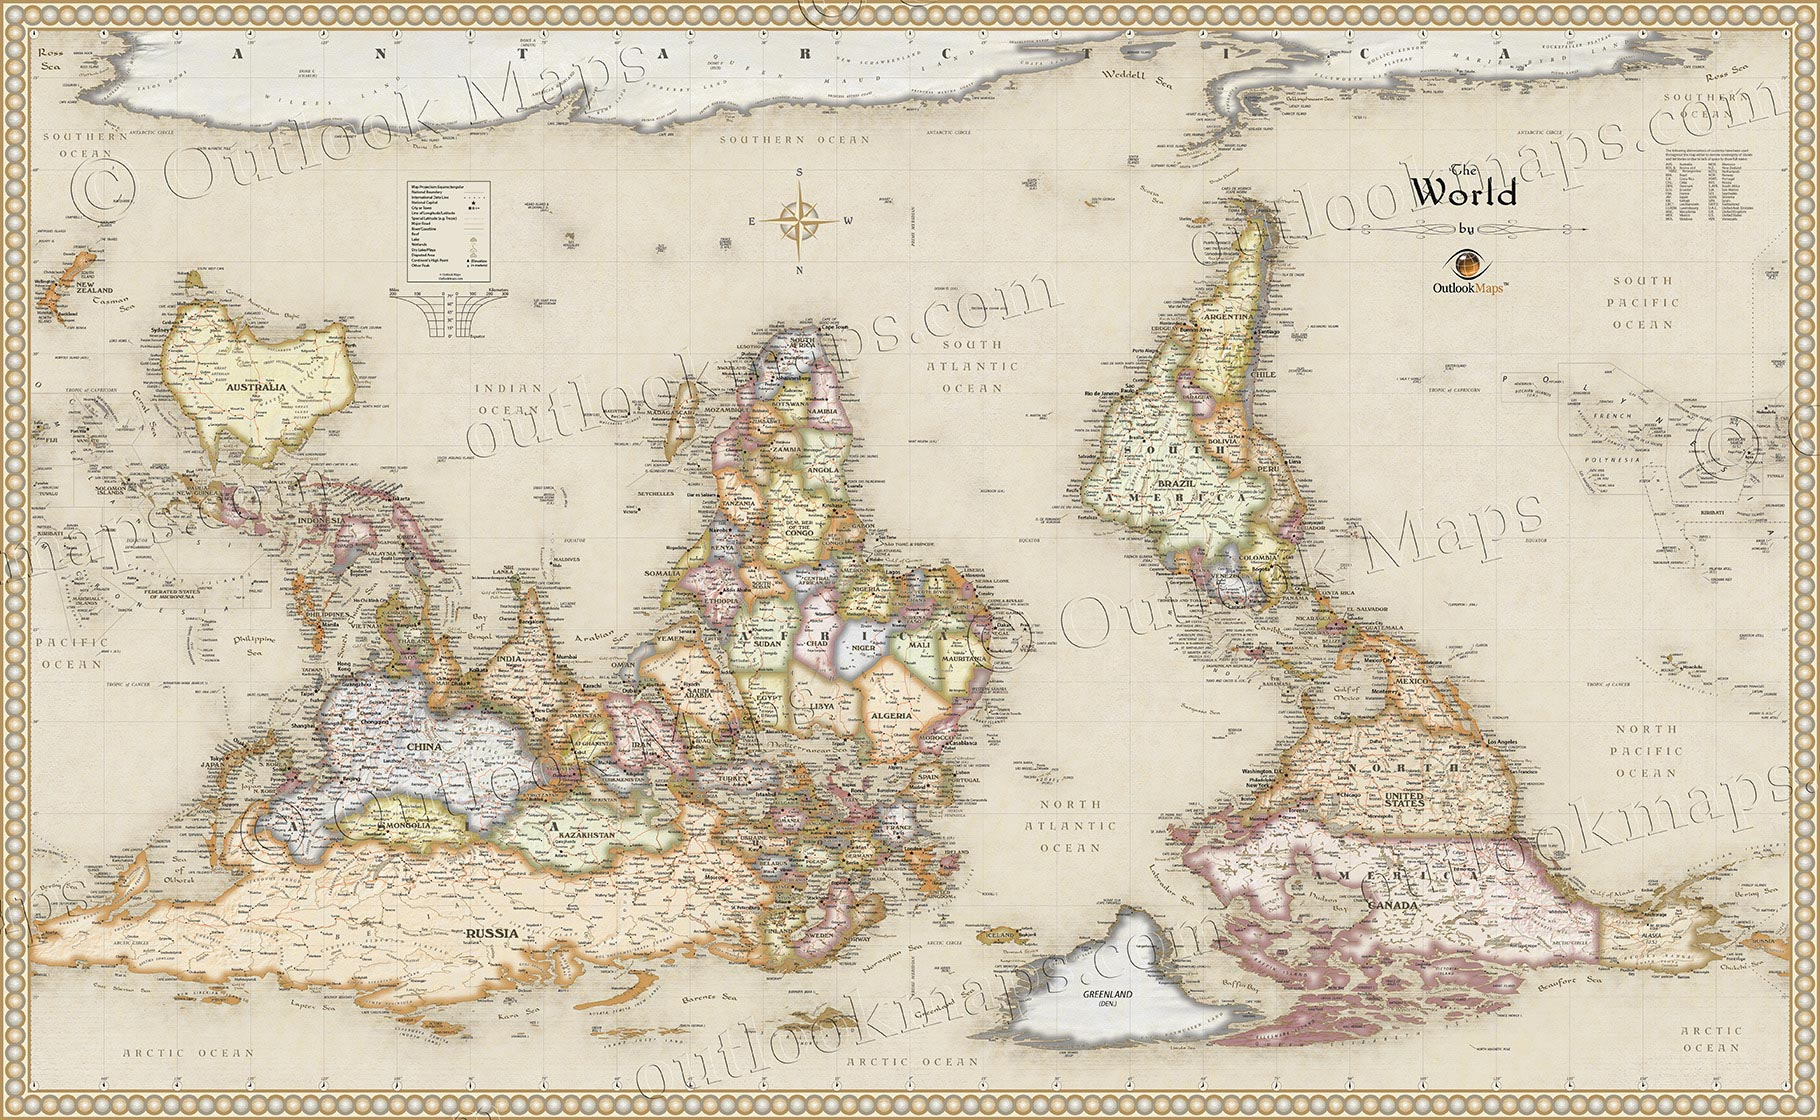 Upside down antique style map antique upside down map of the world gumiabroncs Images